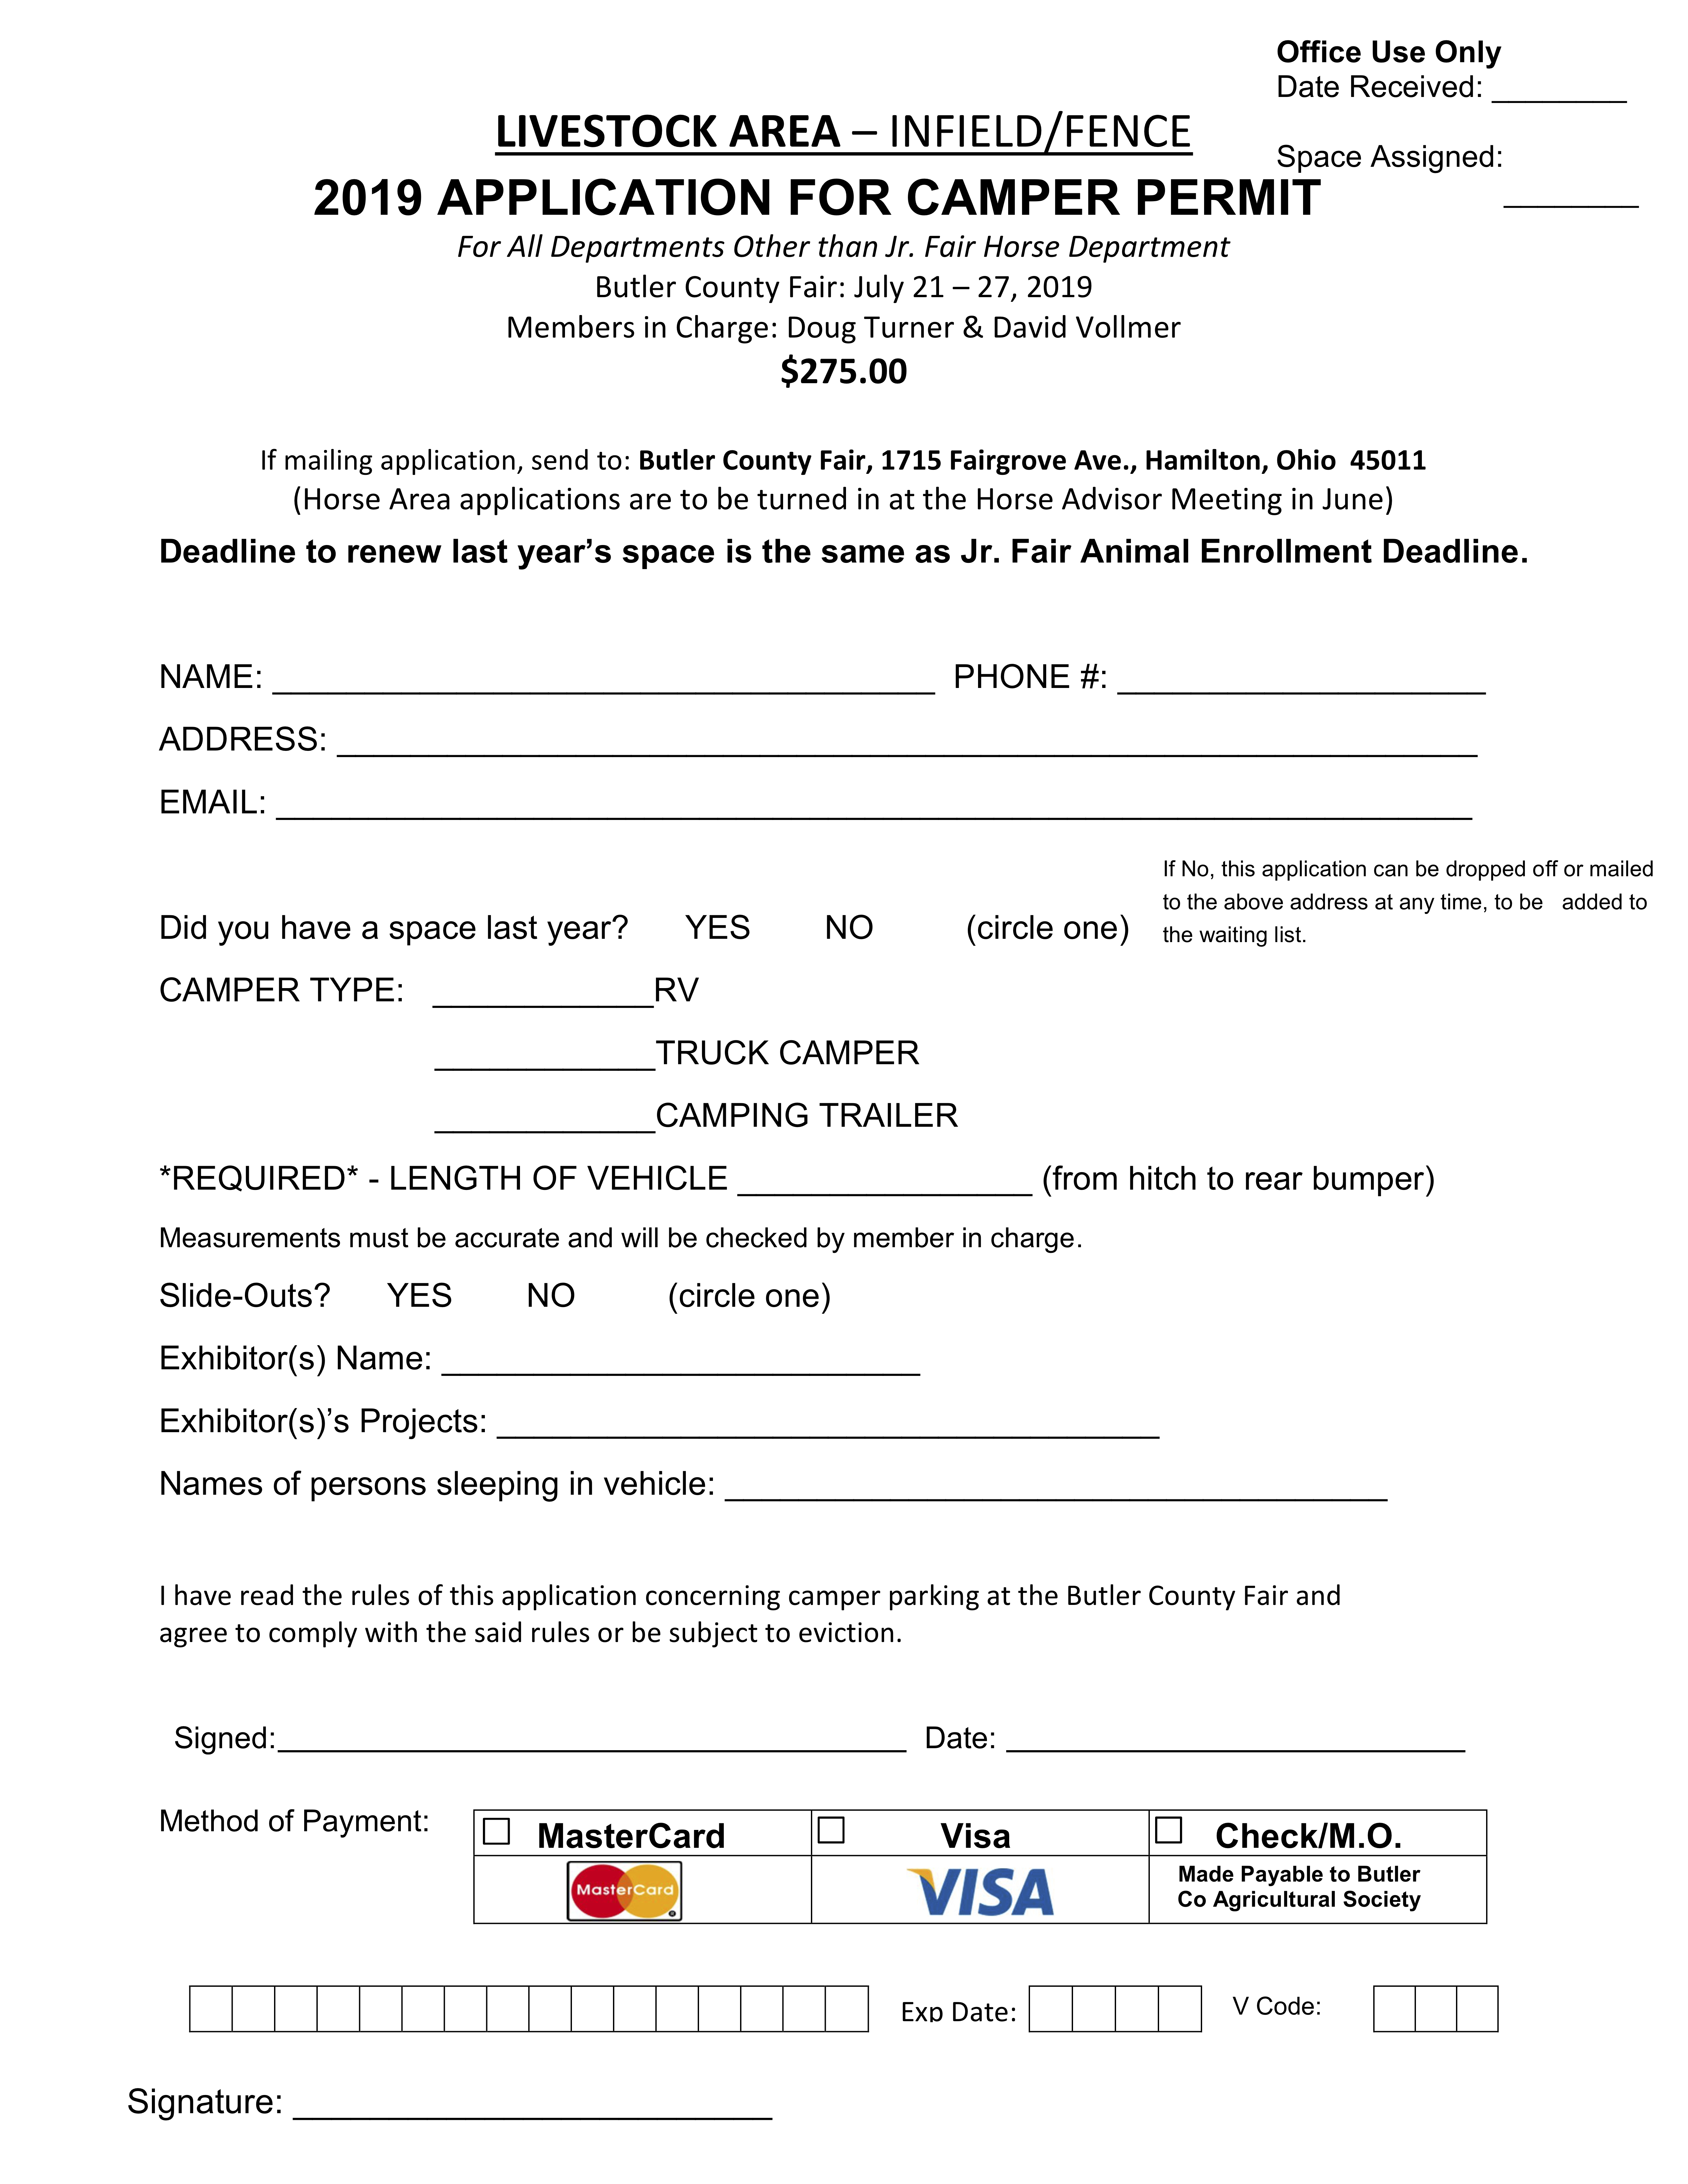 LIVESTOCK AREA CAMPING FORM page 2